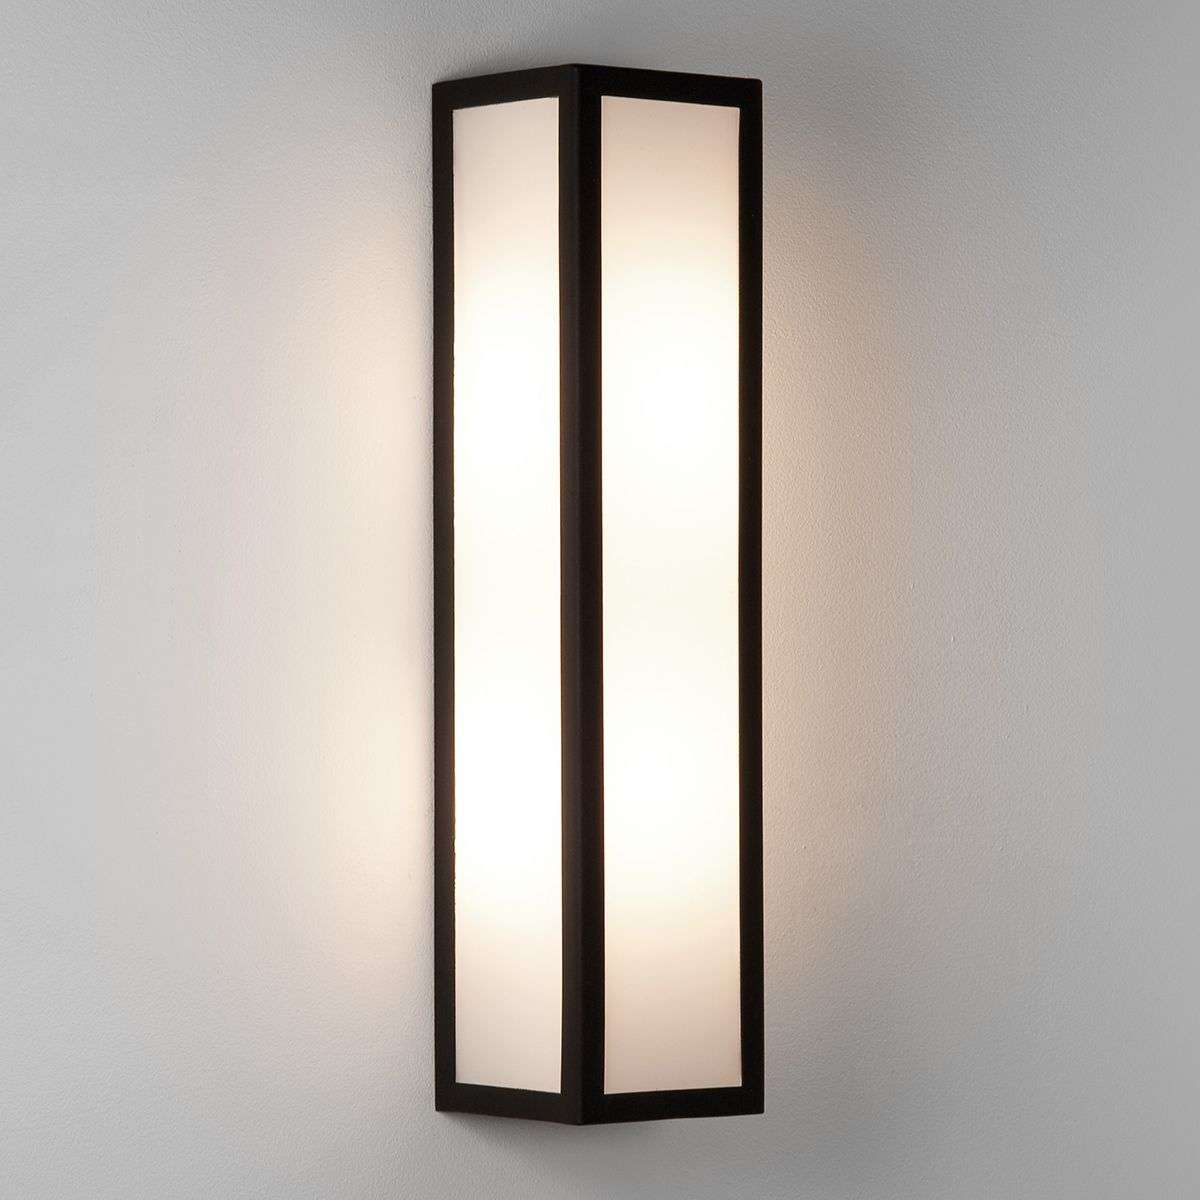 Salerno Outside Wall Light with White Glass-1020336-33